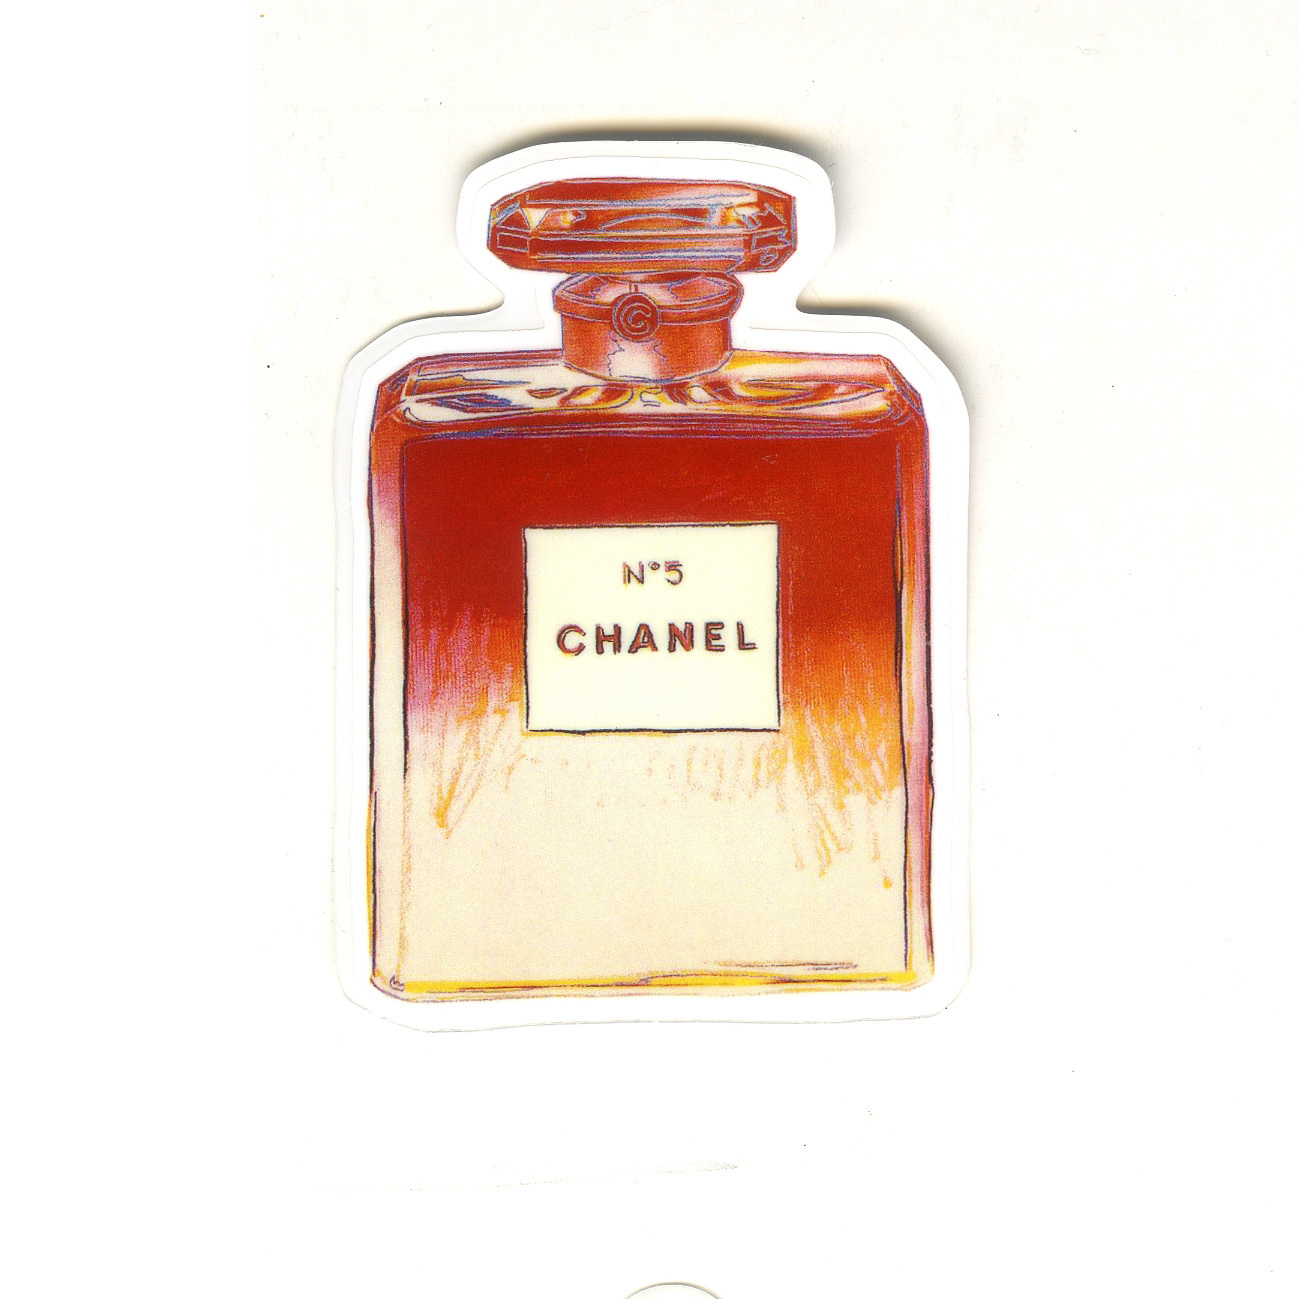 "Used, #1554 Chanel No 5 Perfume Cartoon 8cm 3"" Decal Sticker for luggage car bag phone for sale  USA"